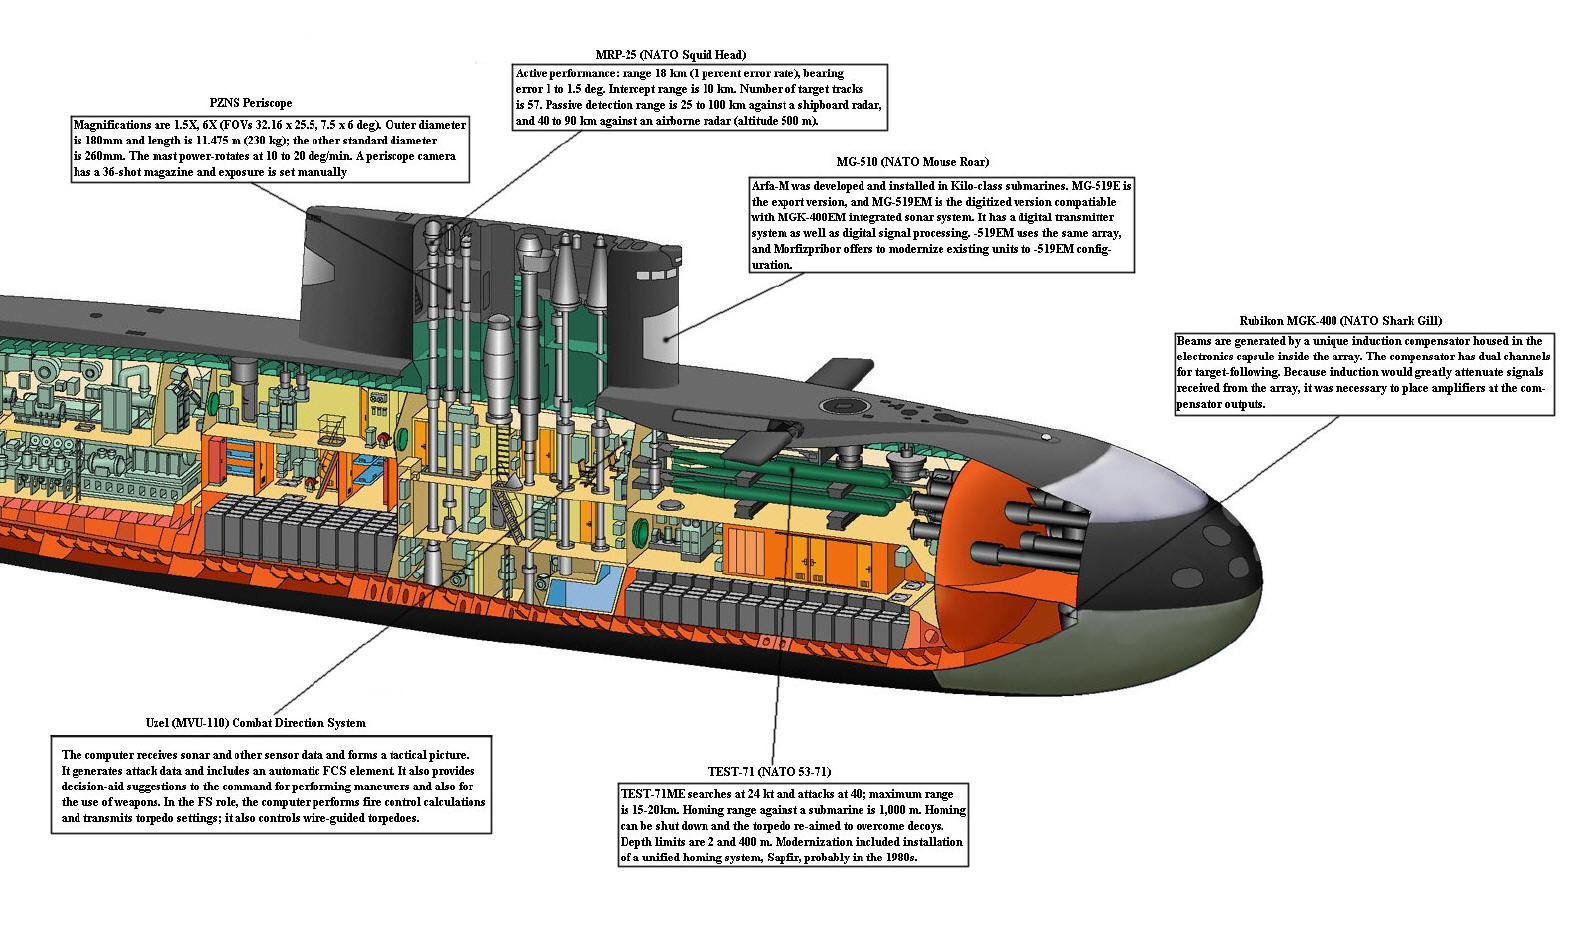 ohio class submarine diagram ready remote wiring nuclear schematics get free image